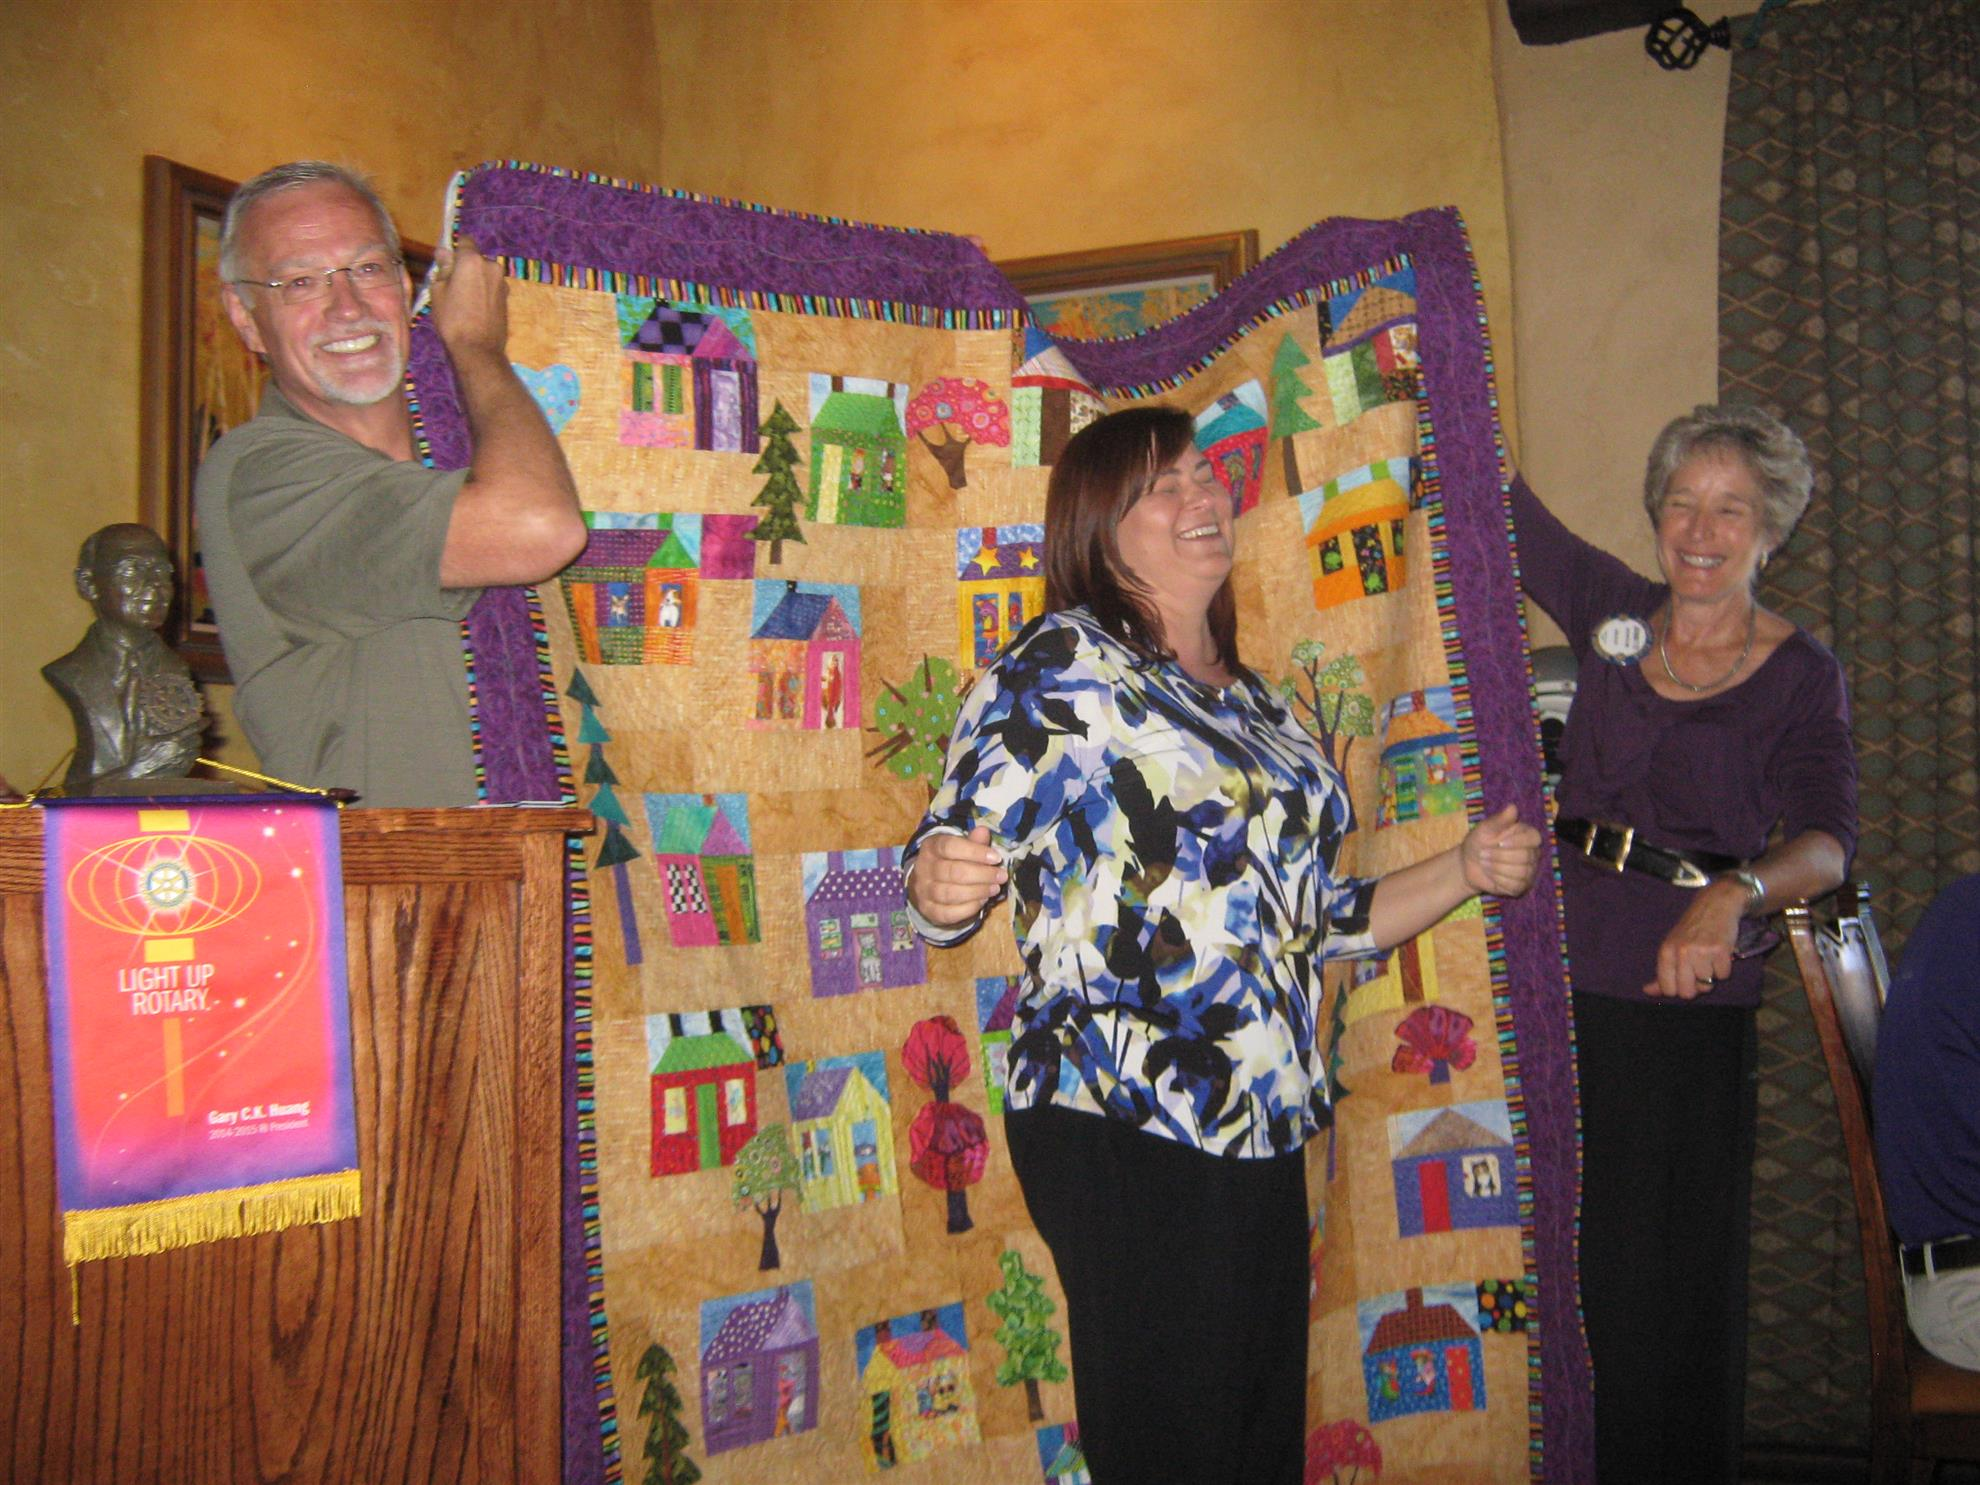 Sandra Gardner does a little victory dance in front of the quilt she has won.